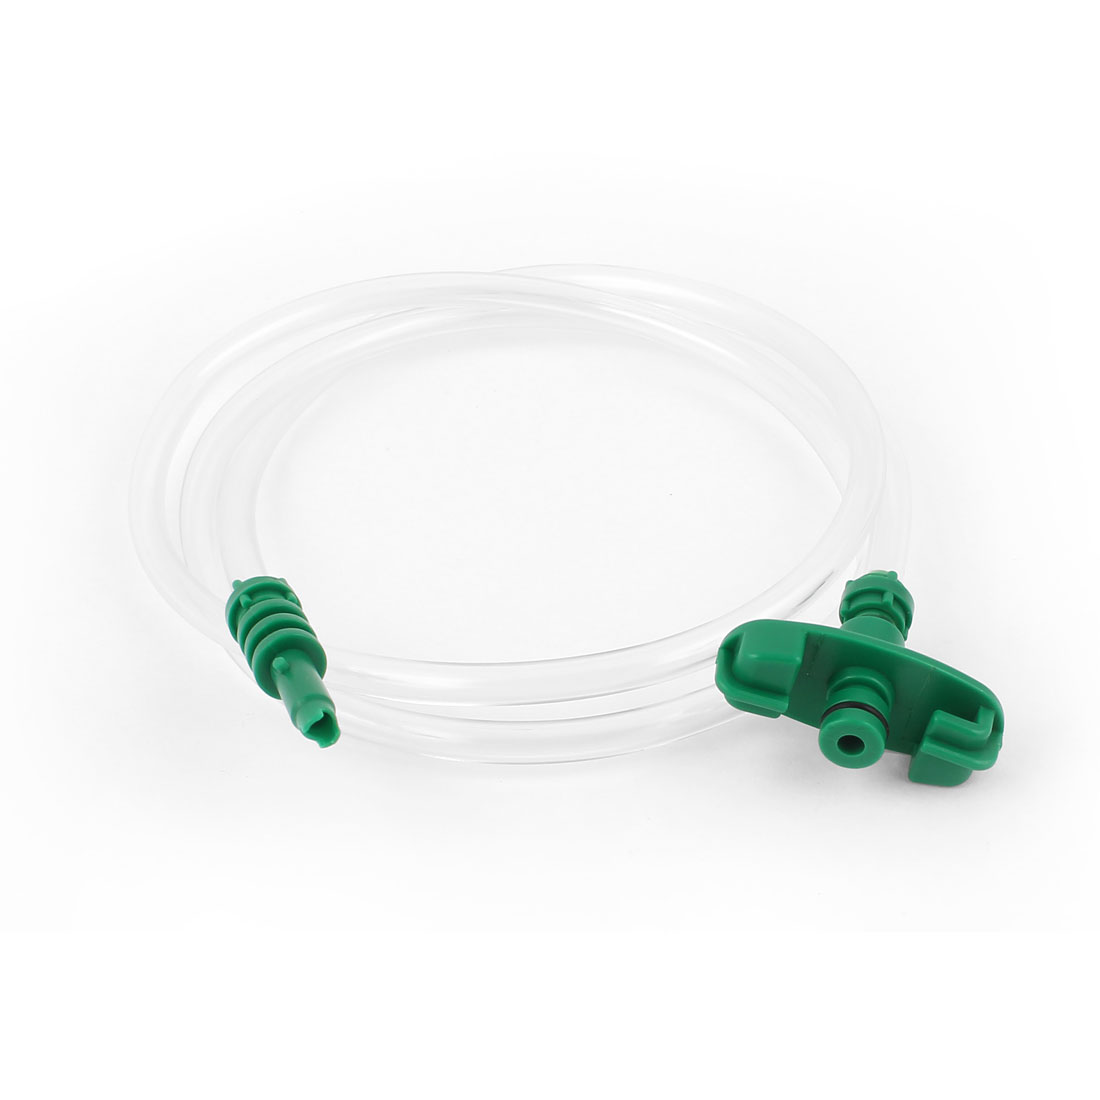 Green Plastic Head Air Hose Dispenser Adapter for 10cc 10ml Syringe Barrel